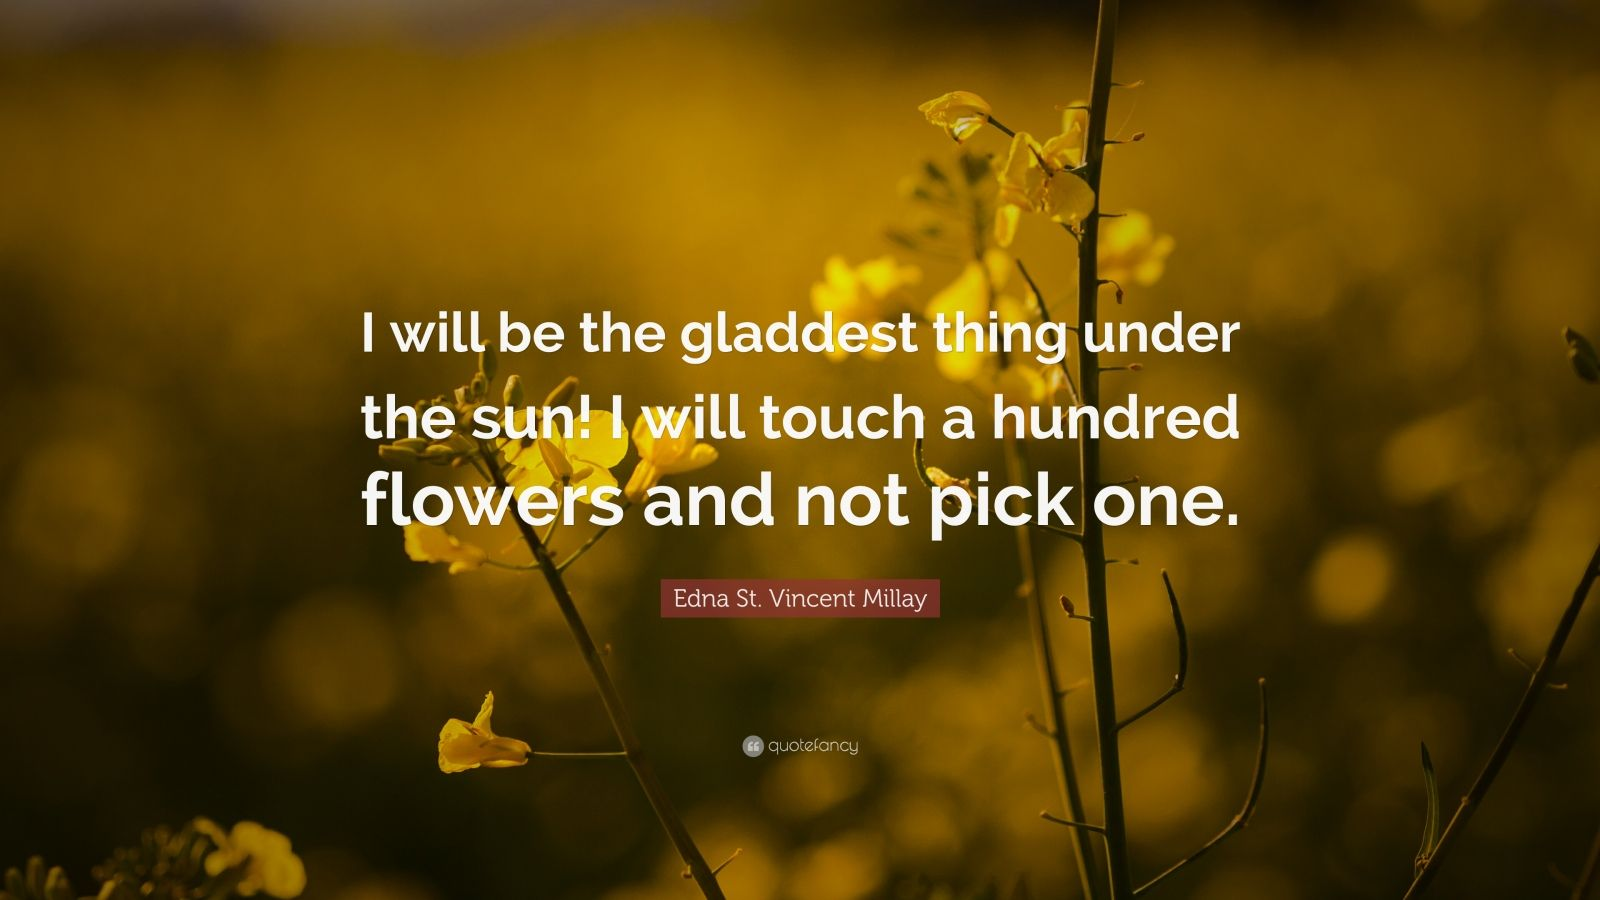 """Edna St. Vincent Millay Quote: """"I will be the gladdest thing under the sun! I will touch a hundred flowers and not pick one."""""""